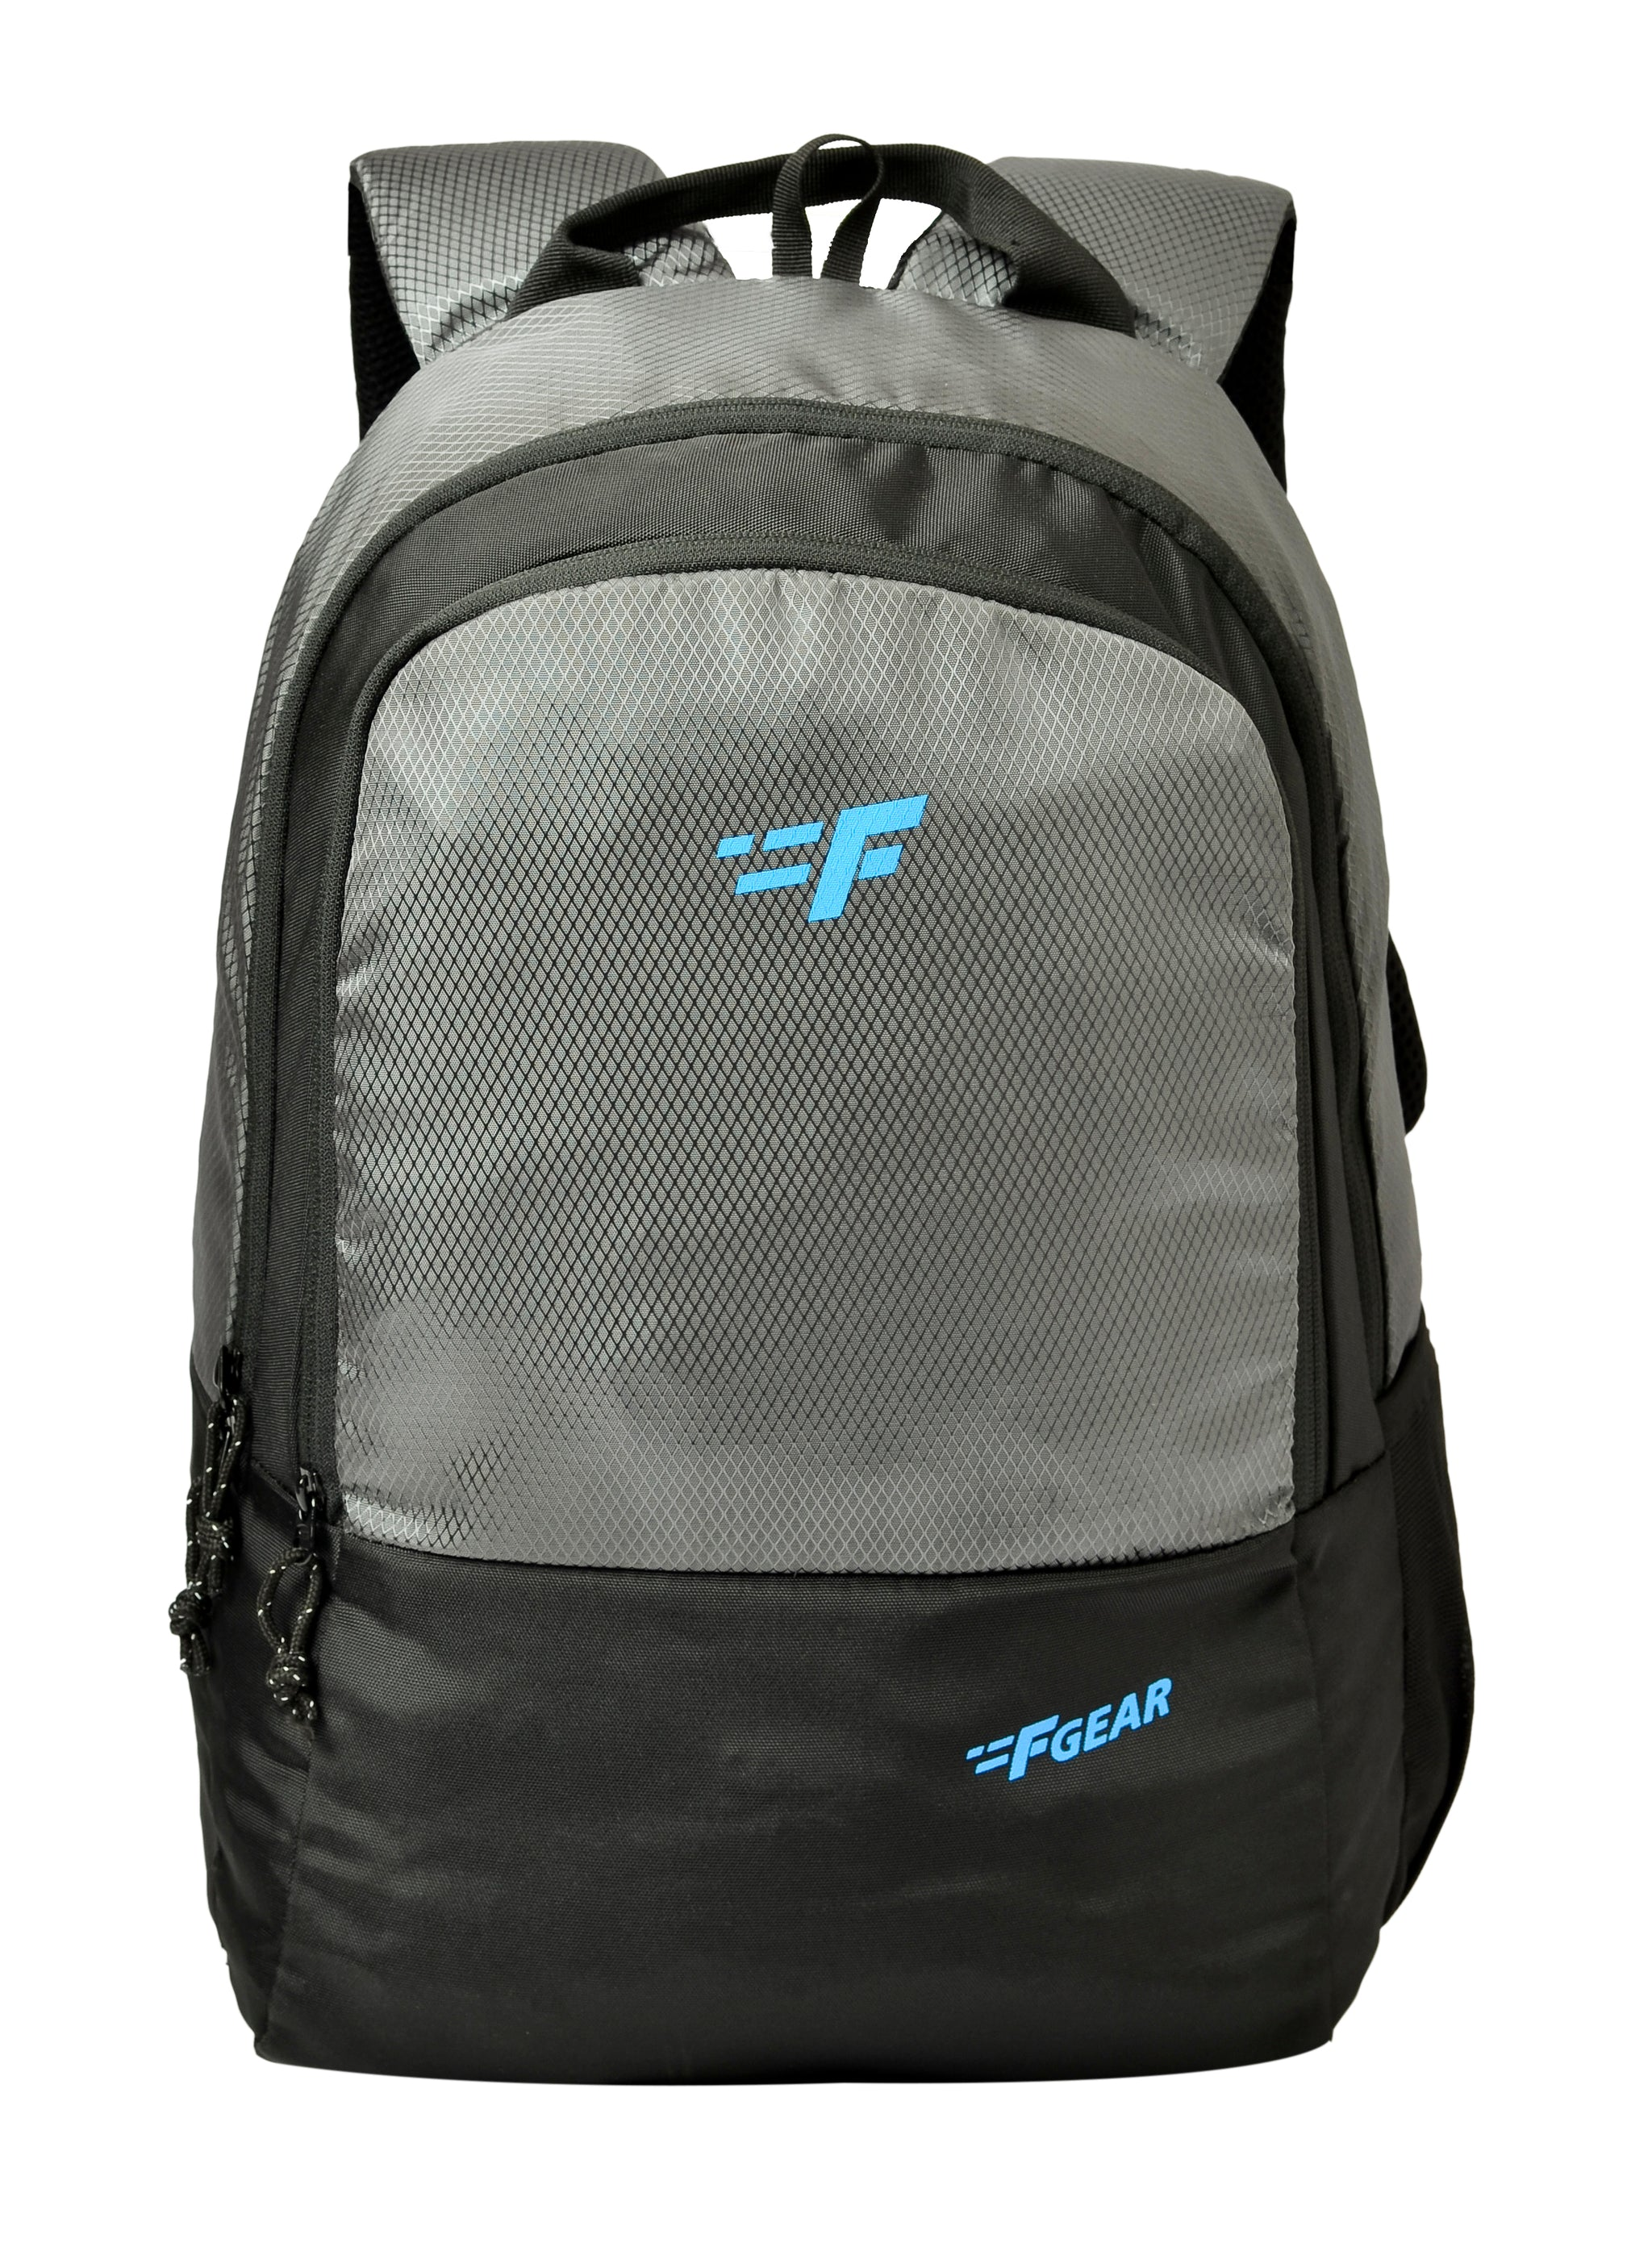 F Gear Parvis Grey Diamond, Black Guc 26 Liters Backpack (2961)